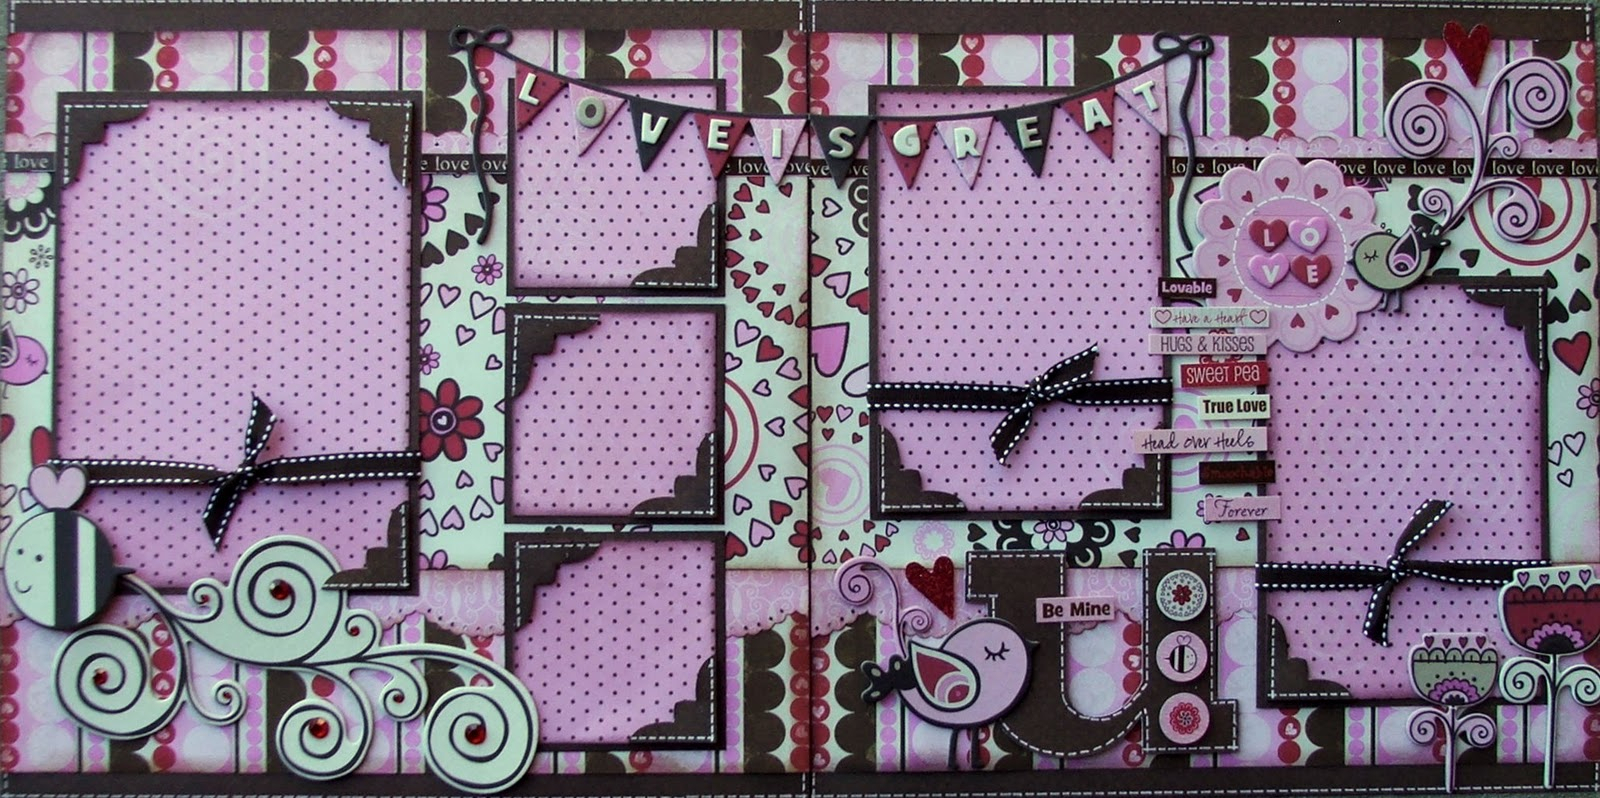 10 Fashionable 2 Page Scrapbook Layout Ideas my scrappin escape crazy love 2 page layout at the scrapbook garden 2021